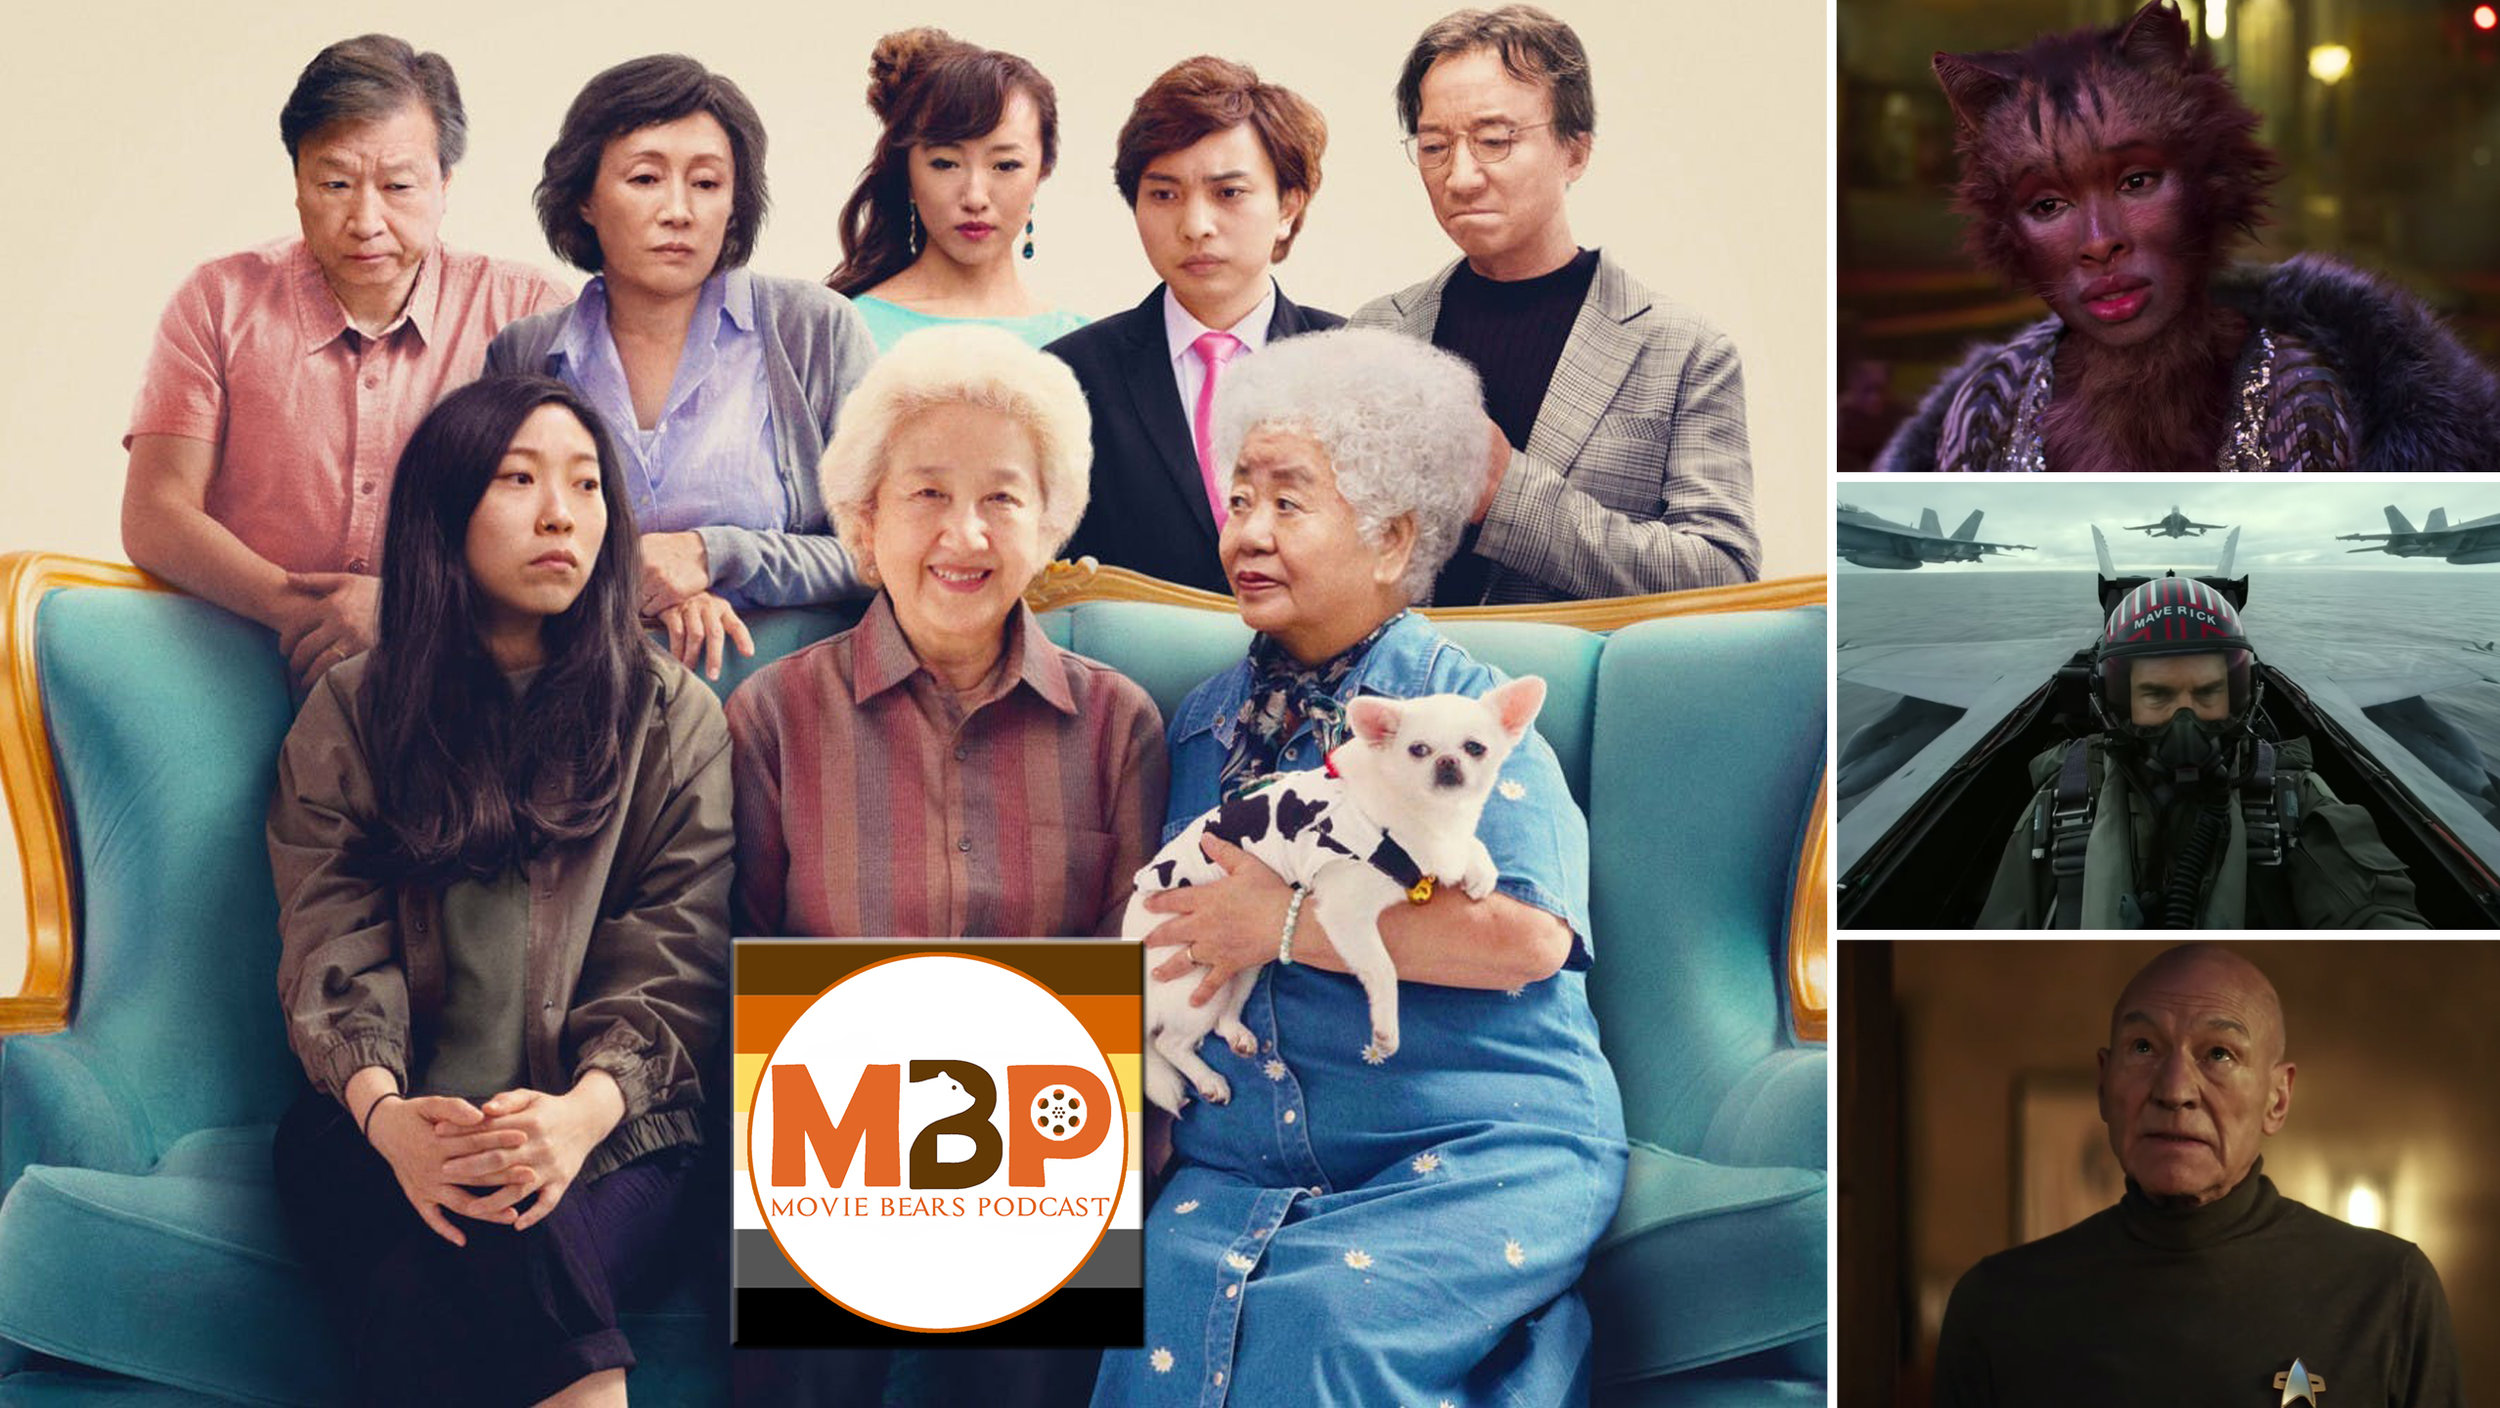 MBP e333 - 'The Farewell' and Trailer Round-Up (8/6/19)    On this episode we review THE FAREWELL, the new family 'dramedy' starring Awkwafina. We also take a peek at a few new trailers setting the internet abuzz, including TOP GUN: MAVERICK, CATS, and PICARD.